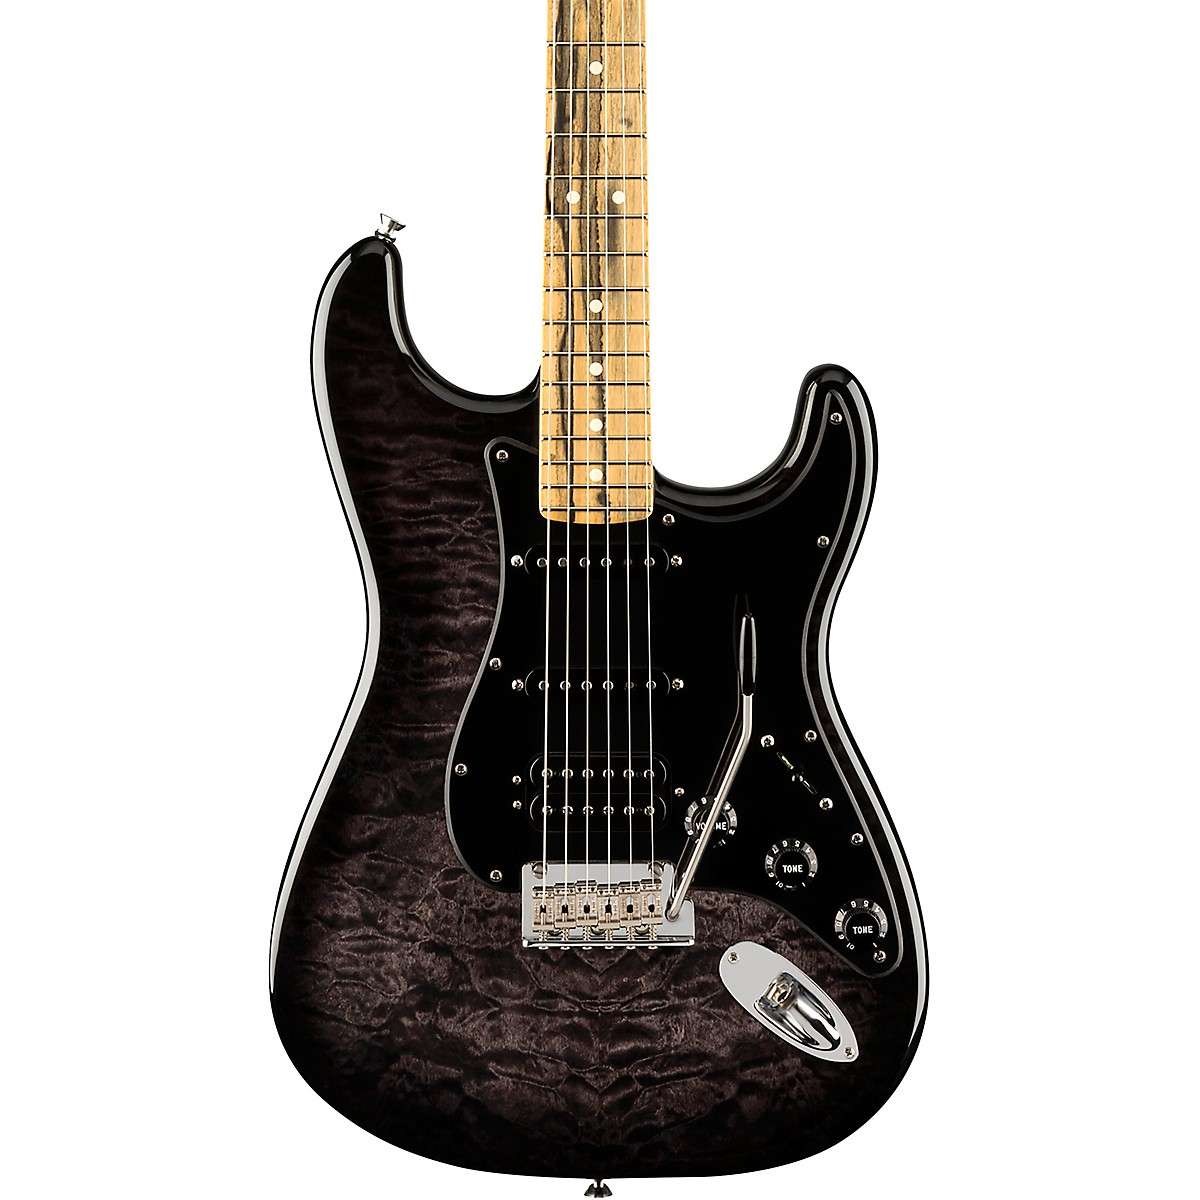 Fender American QMT Stratocaster HSS Pale Moon Ebony Fingerboard Limited Edition Electric Guitar